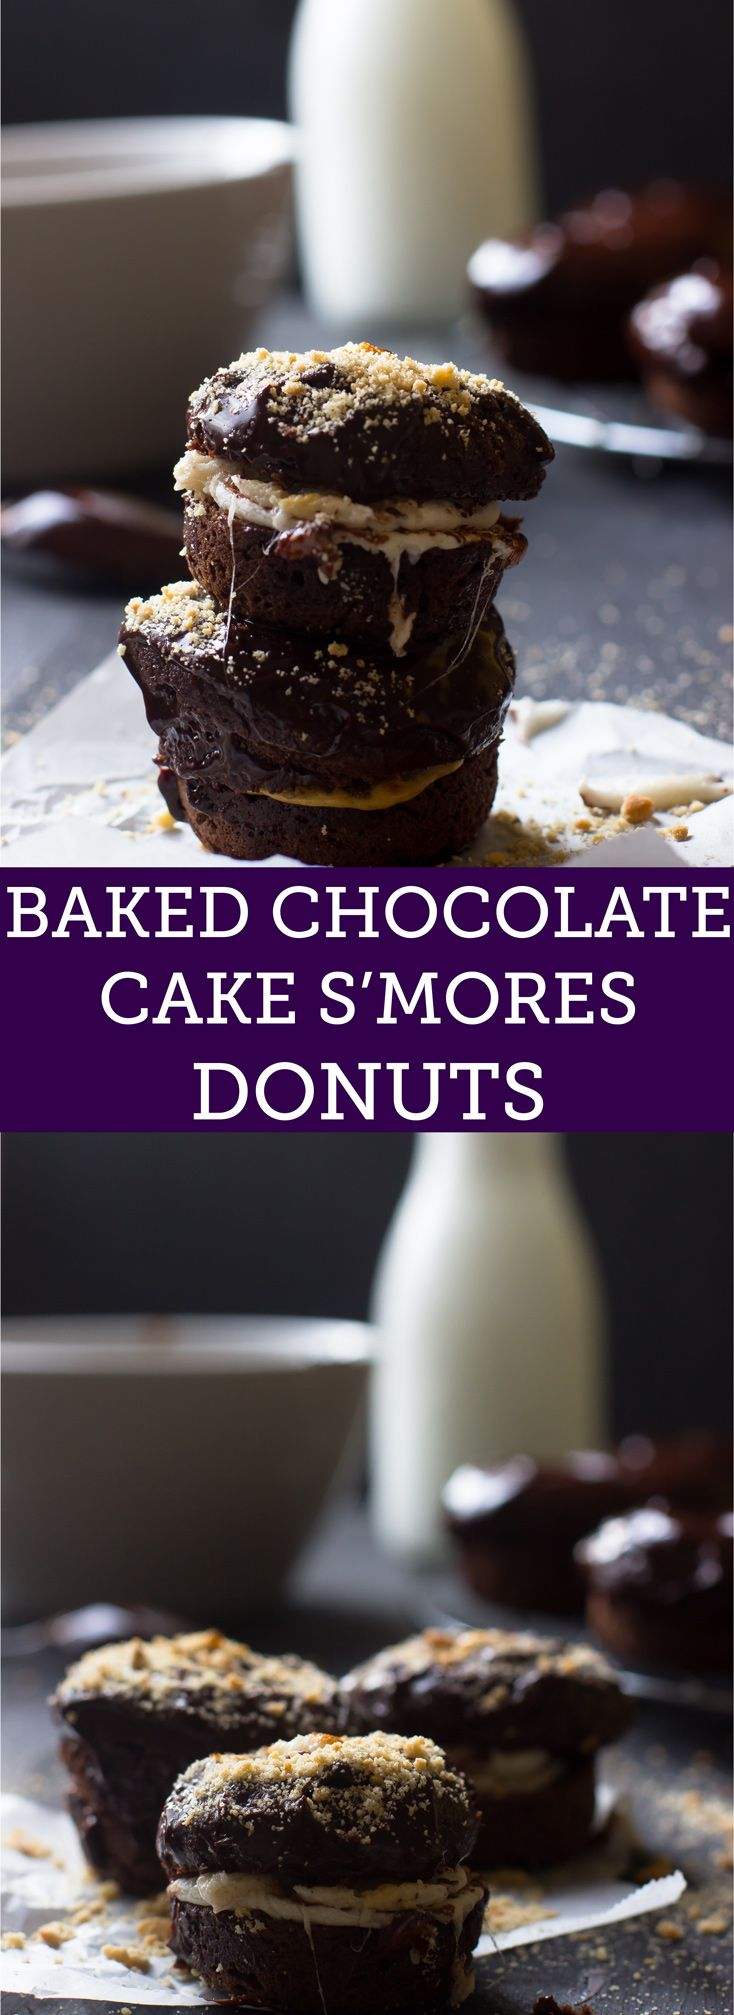 These Baked Chocolate Cake S'mores Donuts are a delicious gluten free chocolate donut sandwich with a toasted melty marshmallow and topped with a delicious chocolate glaze.